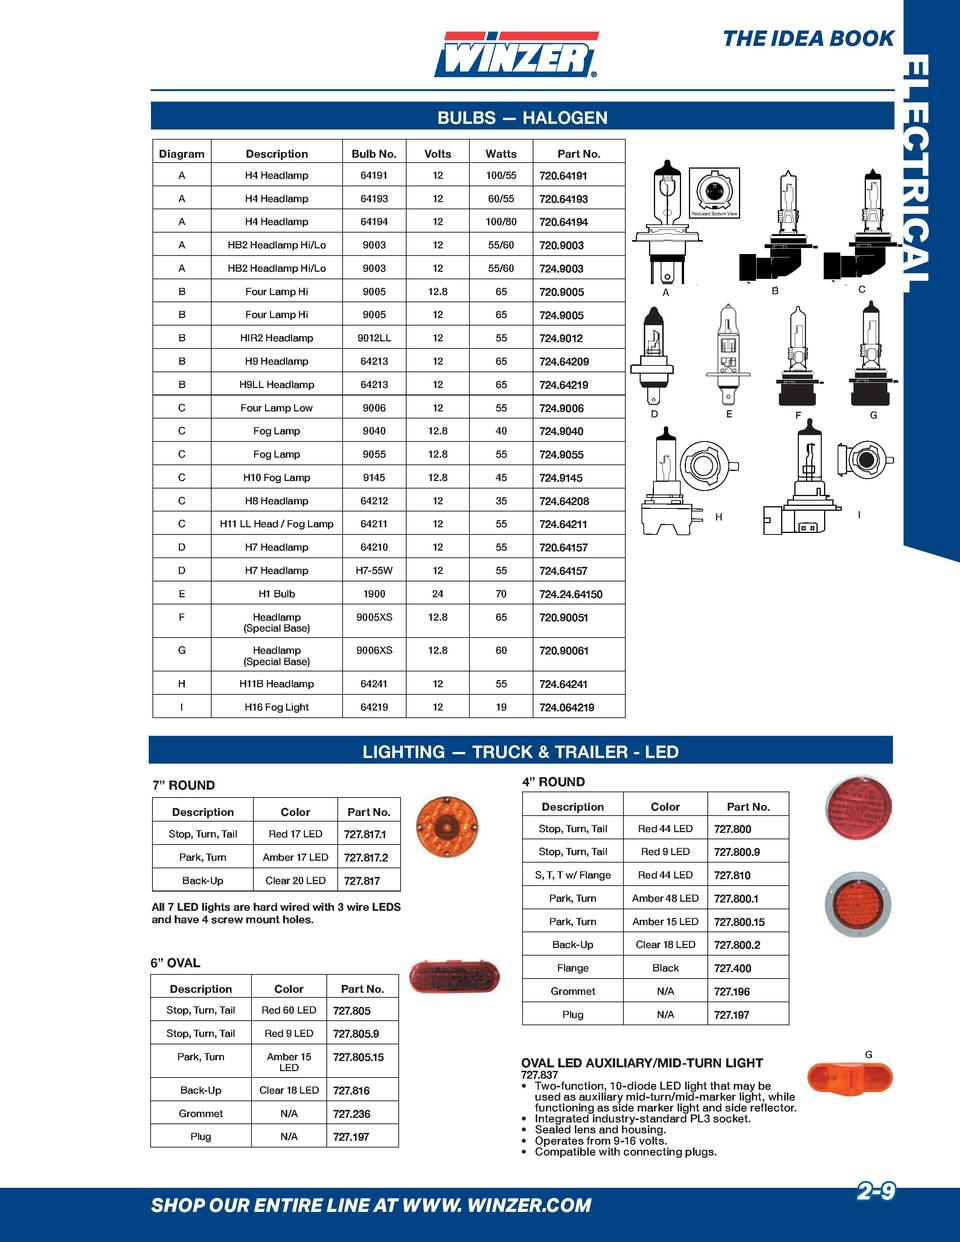 THE IDEA BOOK  ELECTRICAL  BULBS     HALOGEN Diagram  Description  Bulb No.  Volts  Watts  A  H4 Headlamp  64191  12  100 ...